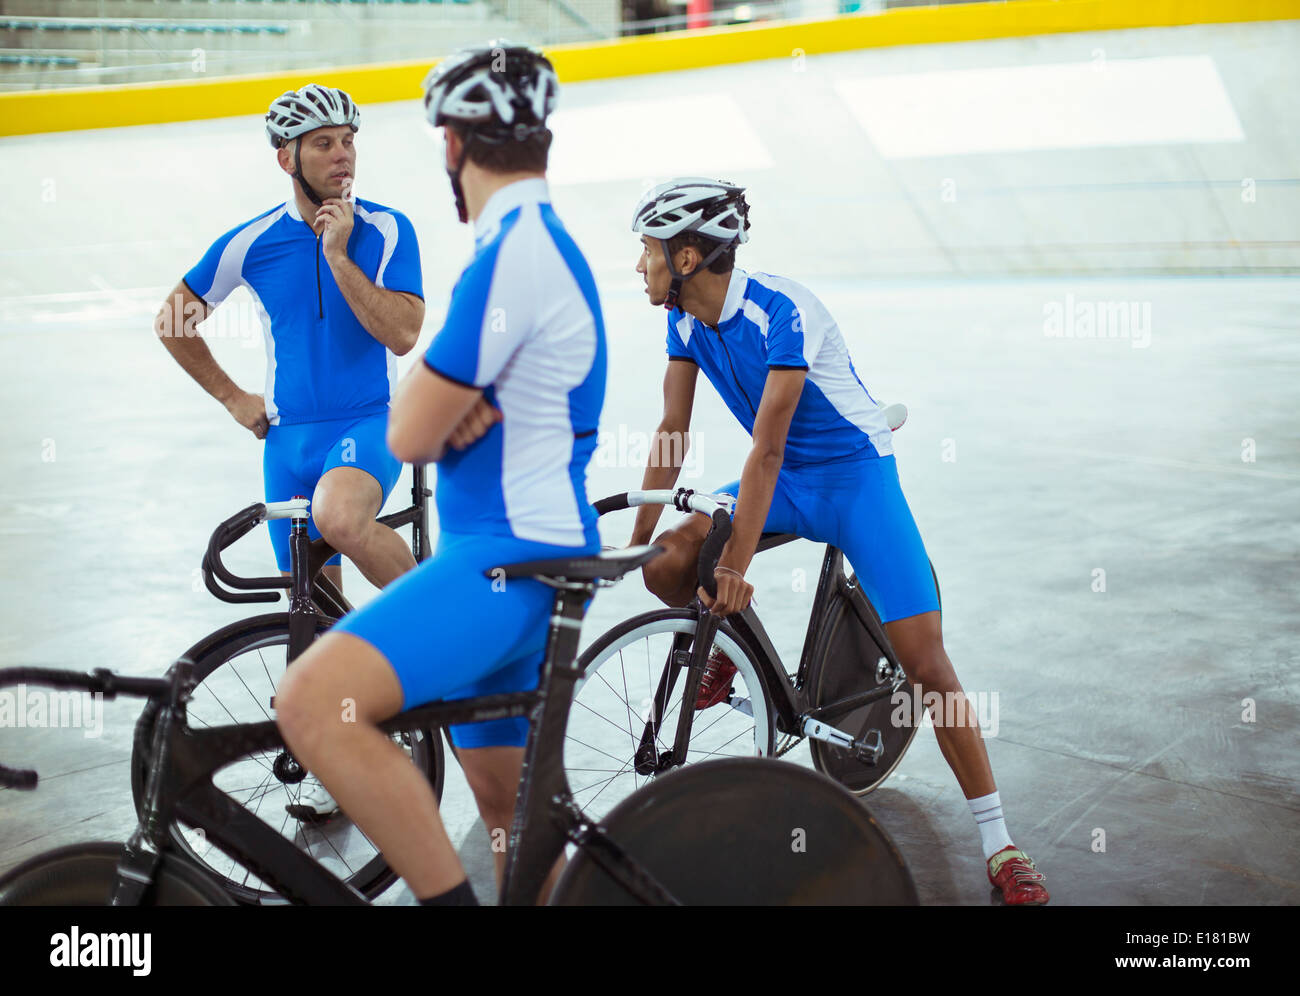 Track cycling team talking in velodrome - Stock Image